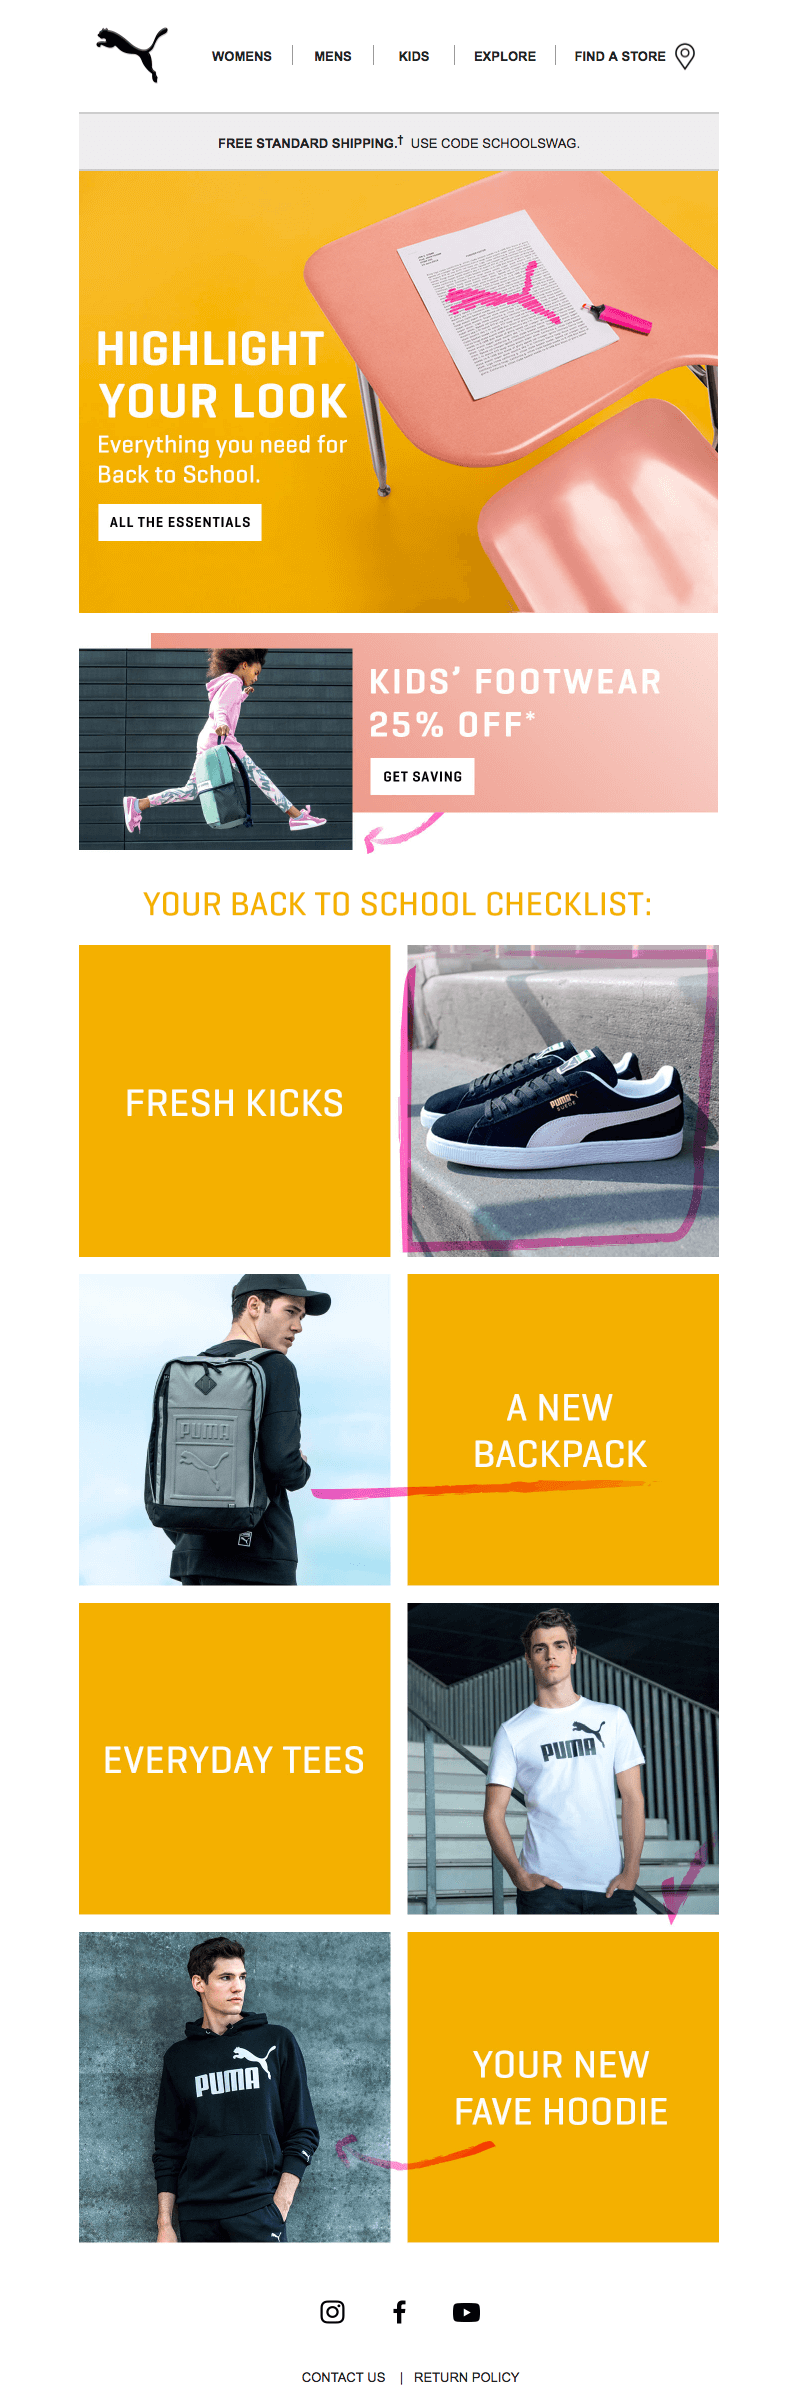 Puma back-to-school sales emails